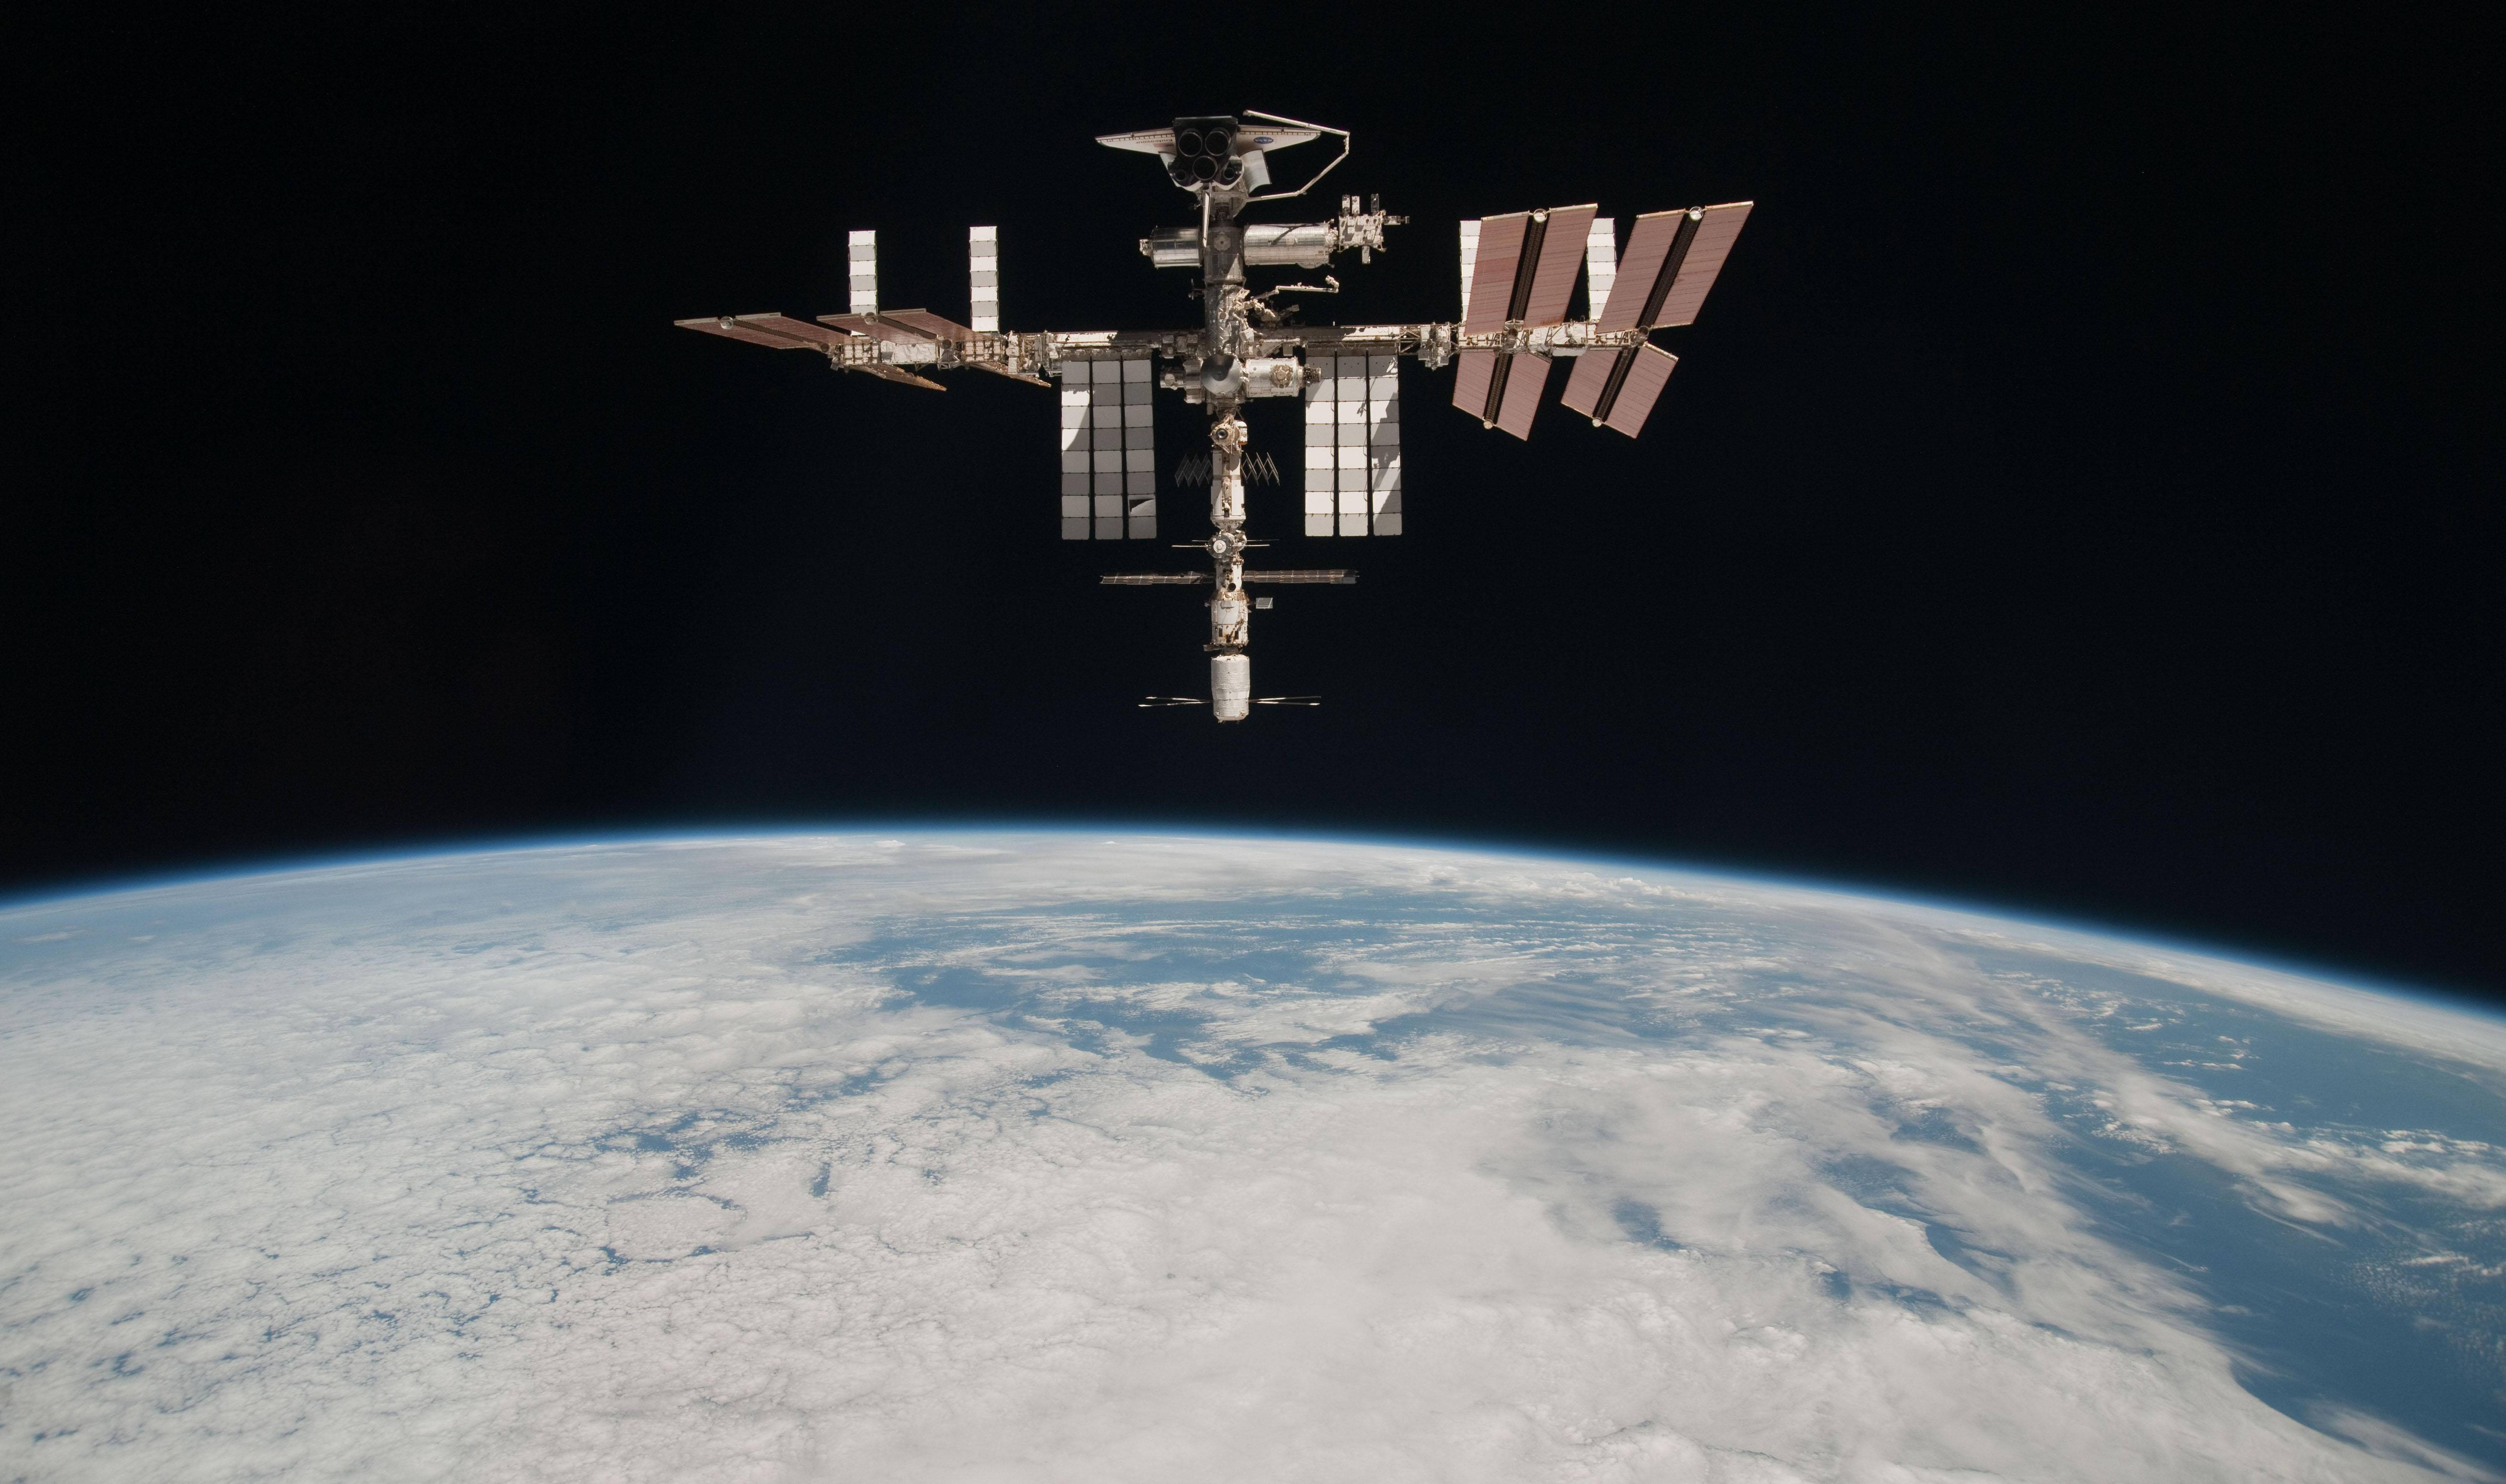 Associated Press/May 23, 2011, from NASA The International Space Station at an altitude of approximately 220 miles above the Earth.